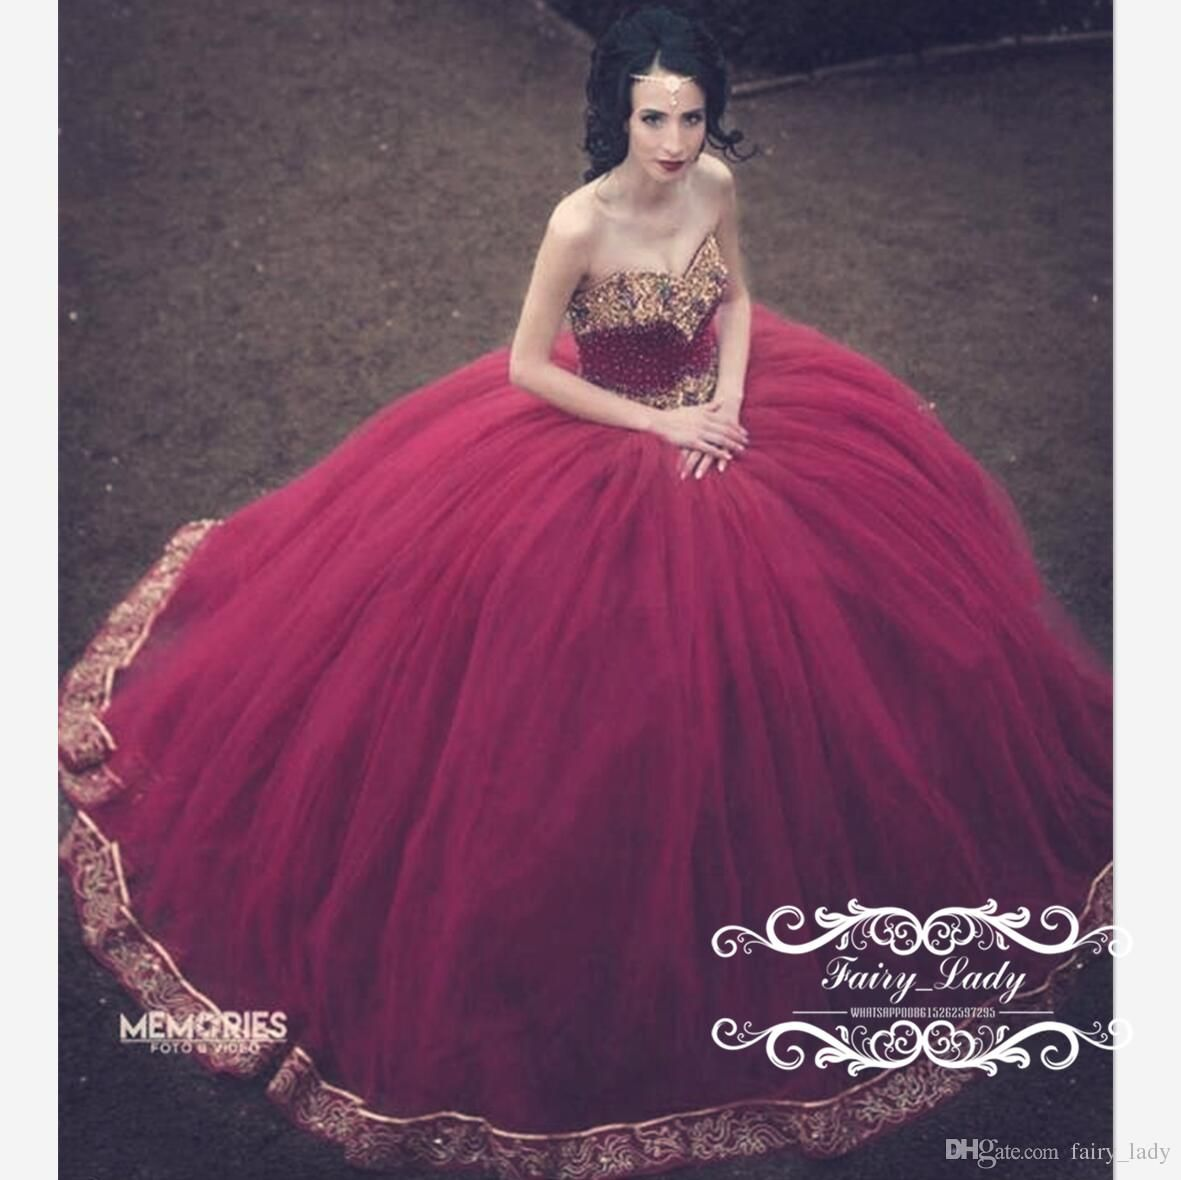 Pin by Tracy Chen on Quinceanera Dresses | Pinterest | Purple ...